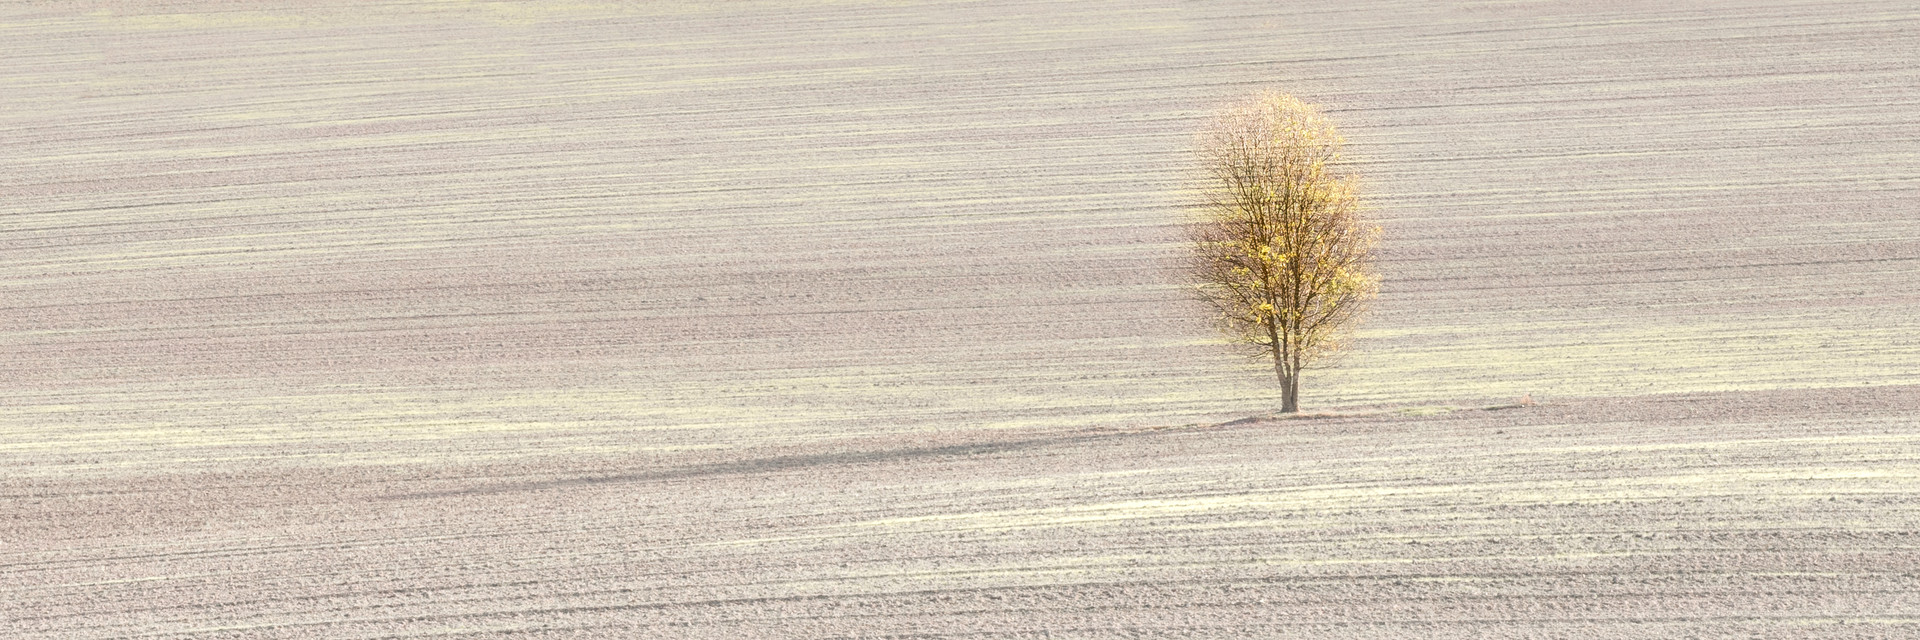 Lone Tree in Autumn